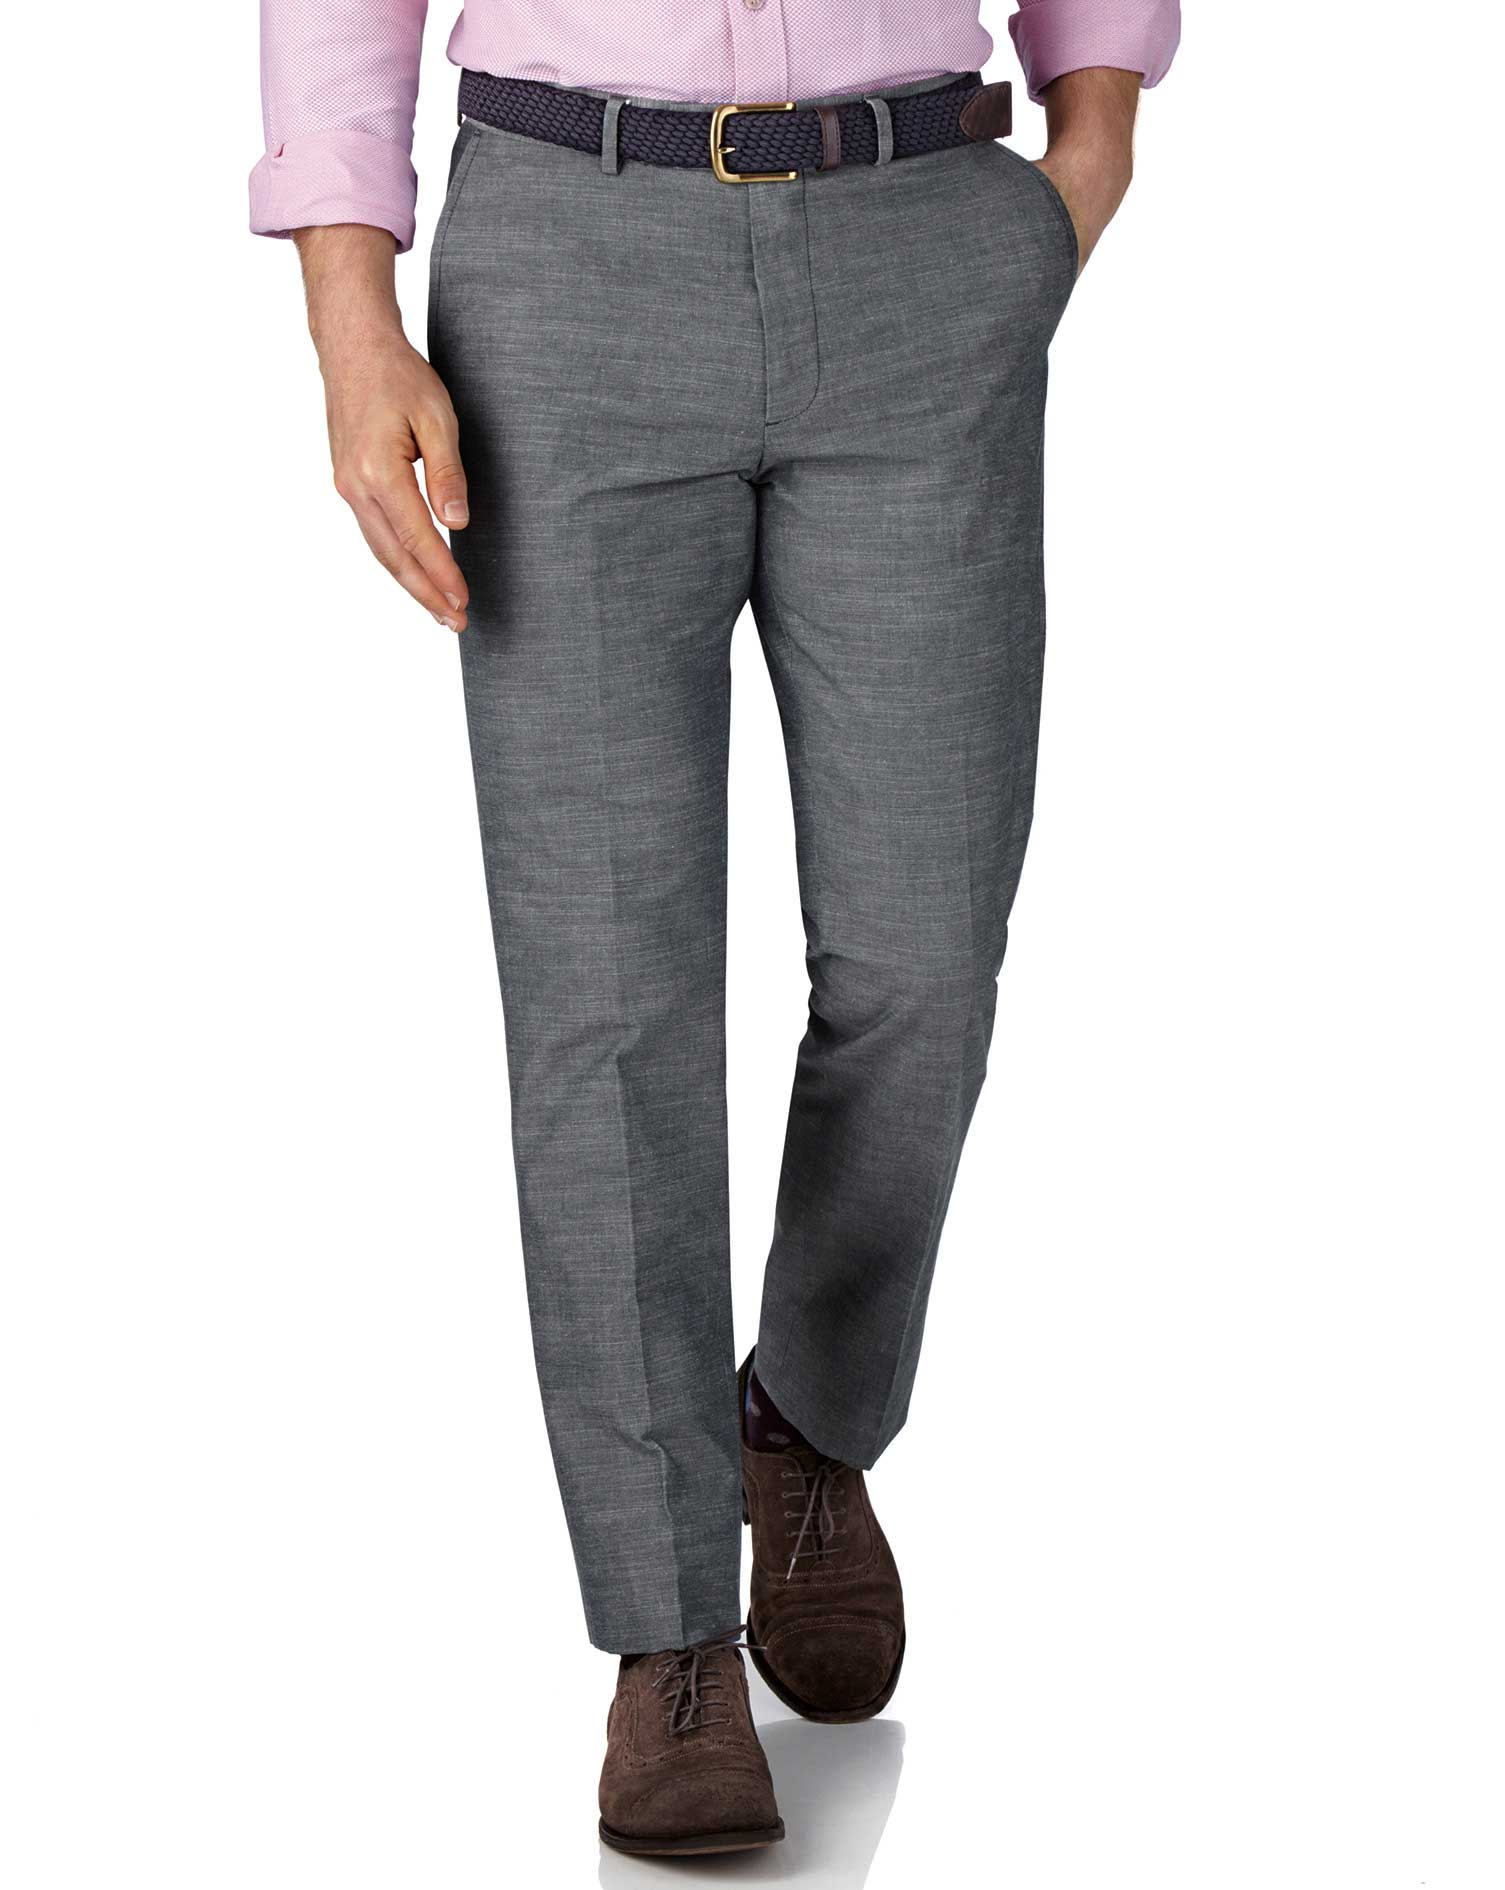 Blue Chambray Slim Fit Trousers Size W42 L30 by Charles Tyrwhitt